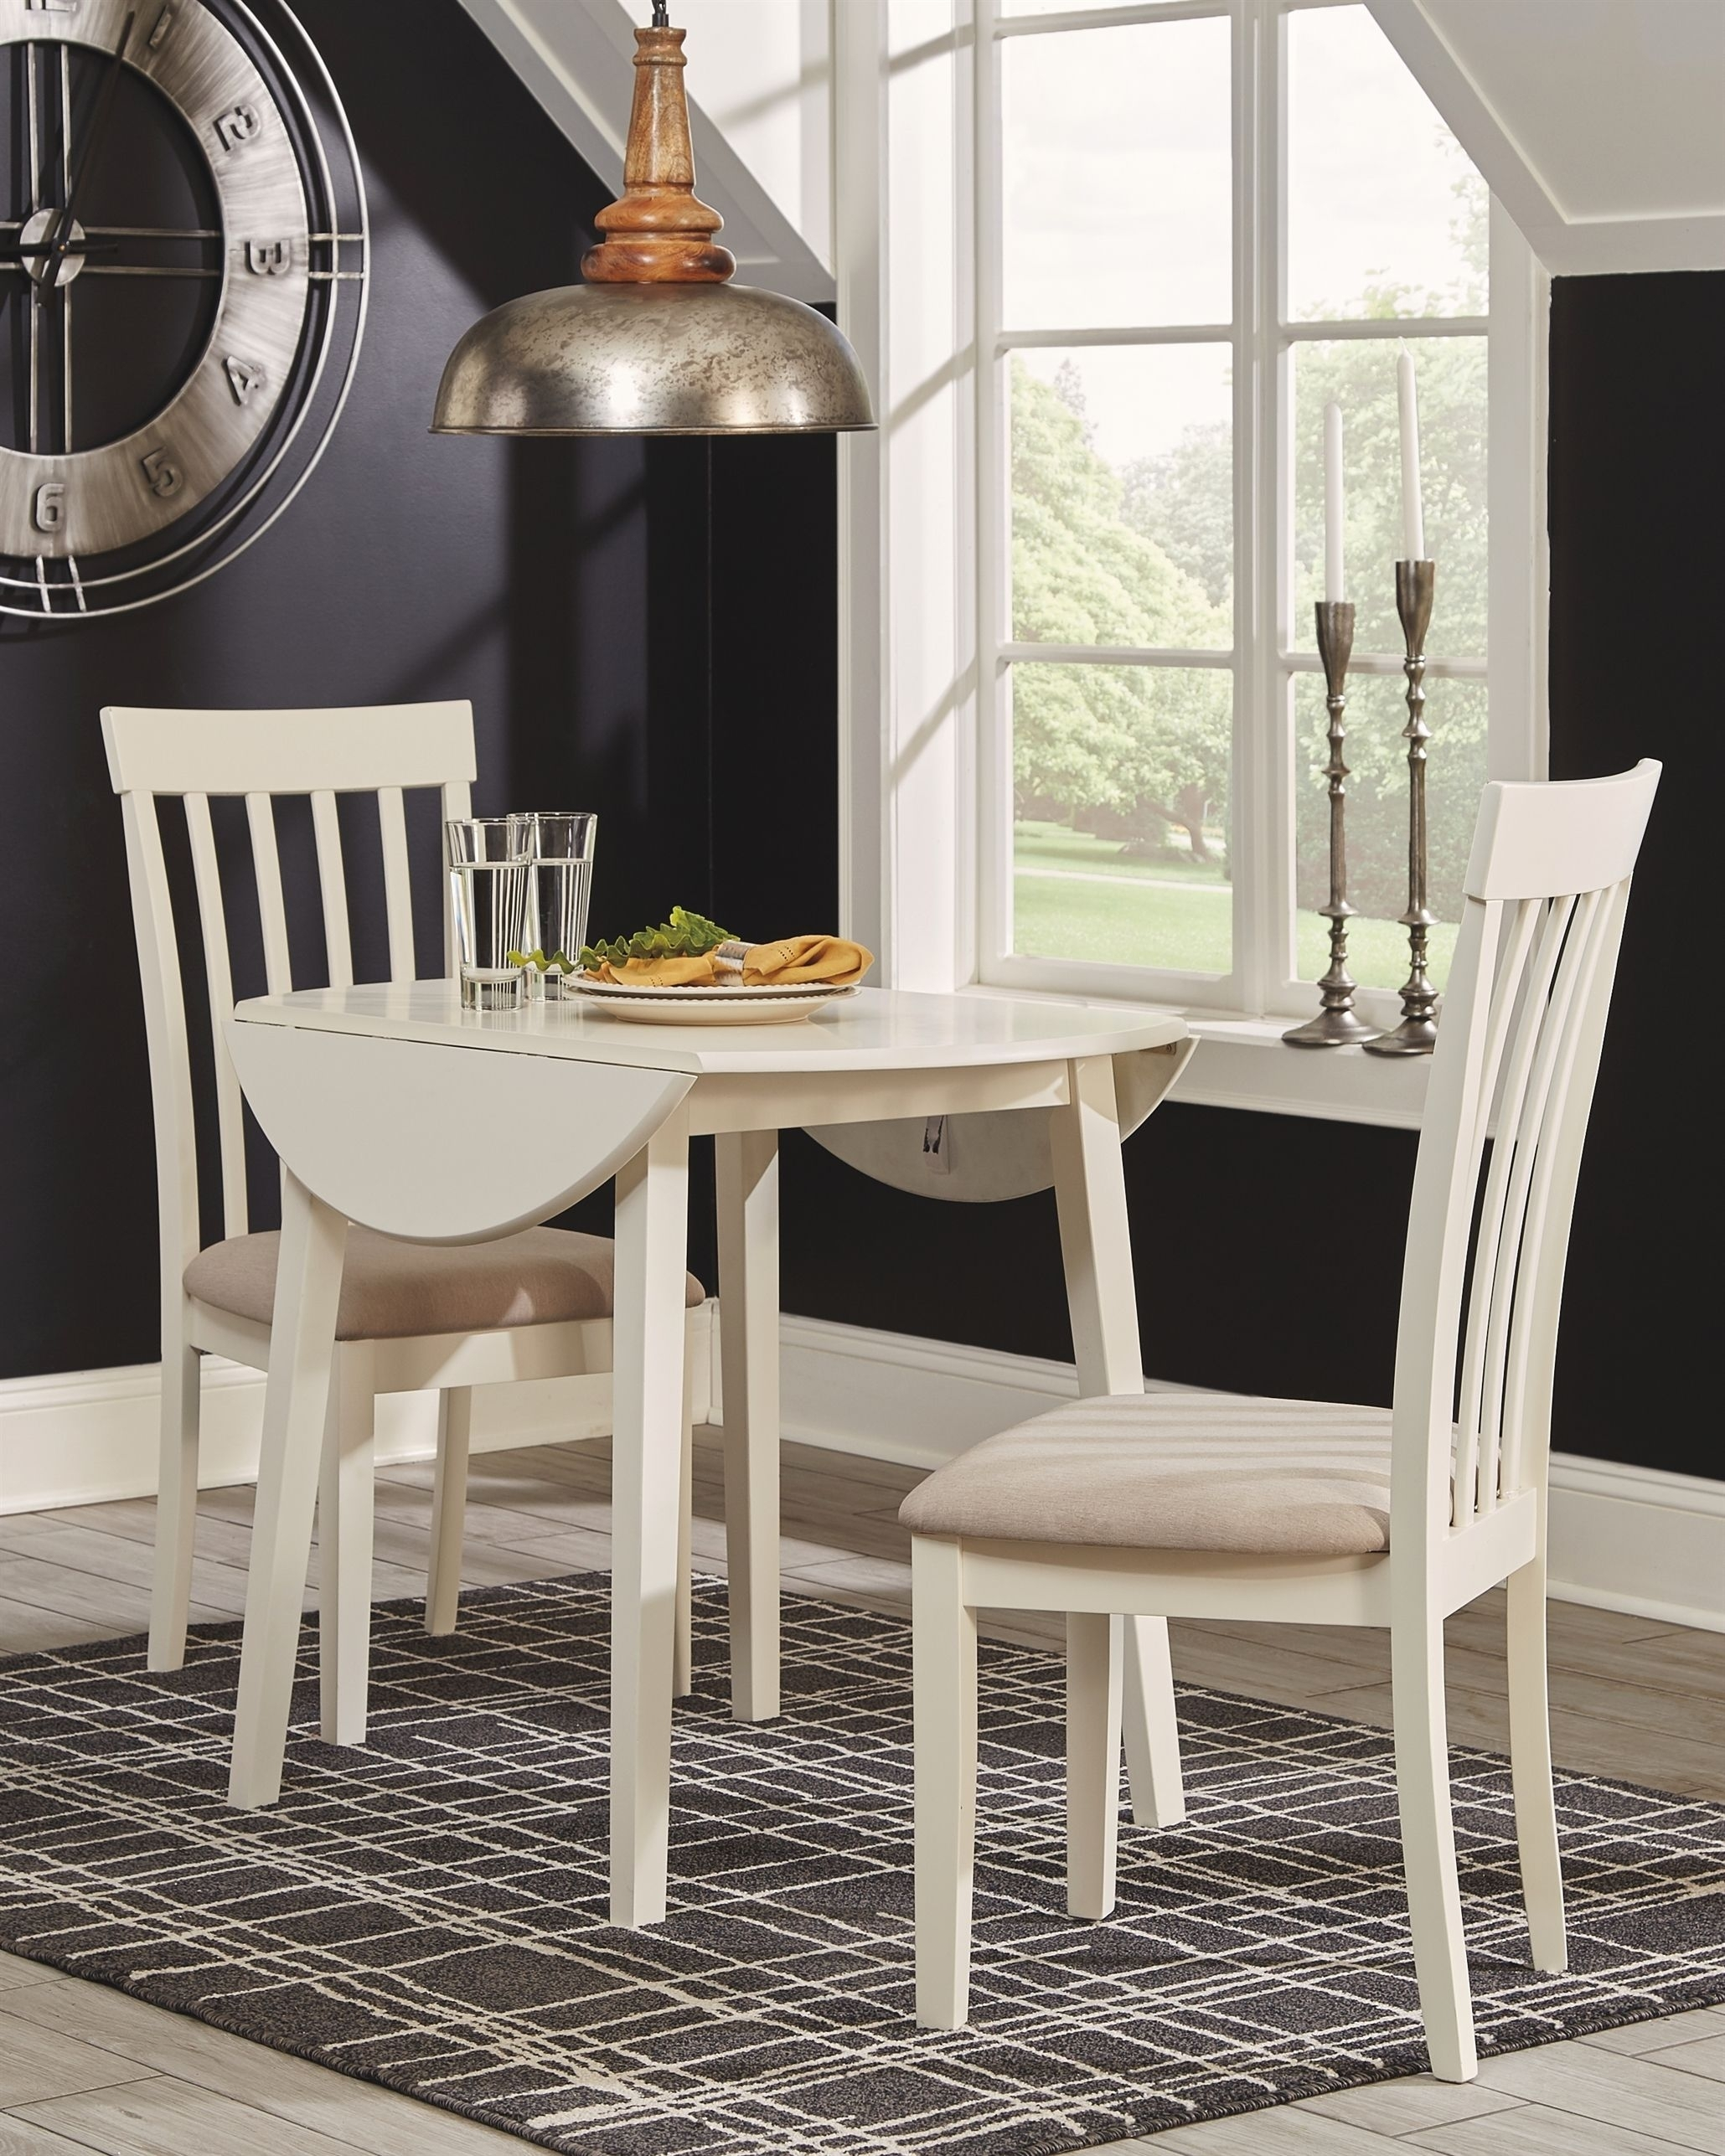 Slannery Dining Room Chair (Set Of 2), White #diningroomchairs Pertaining To 2018 Market 7 Piece Dining Sets With Host And Side Chairs (View 8 of 20)